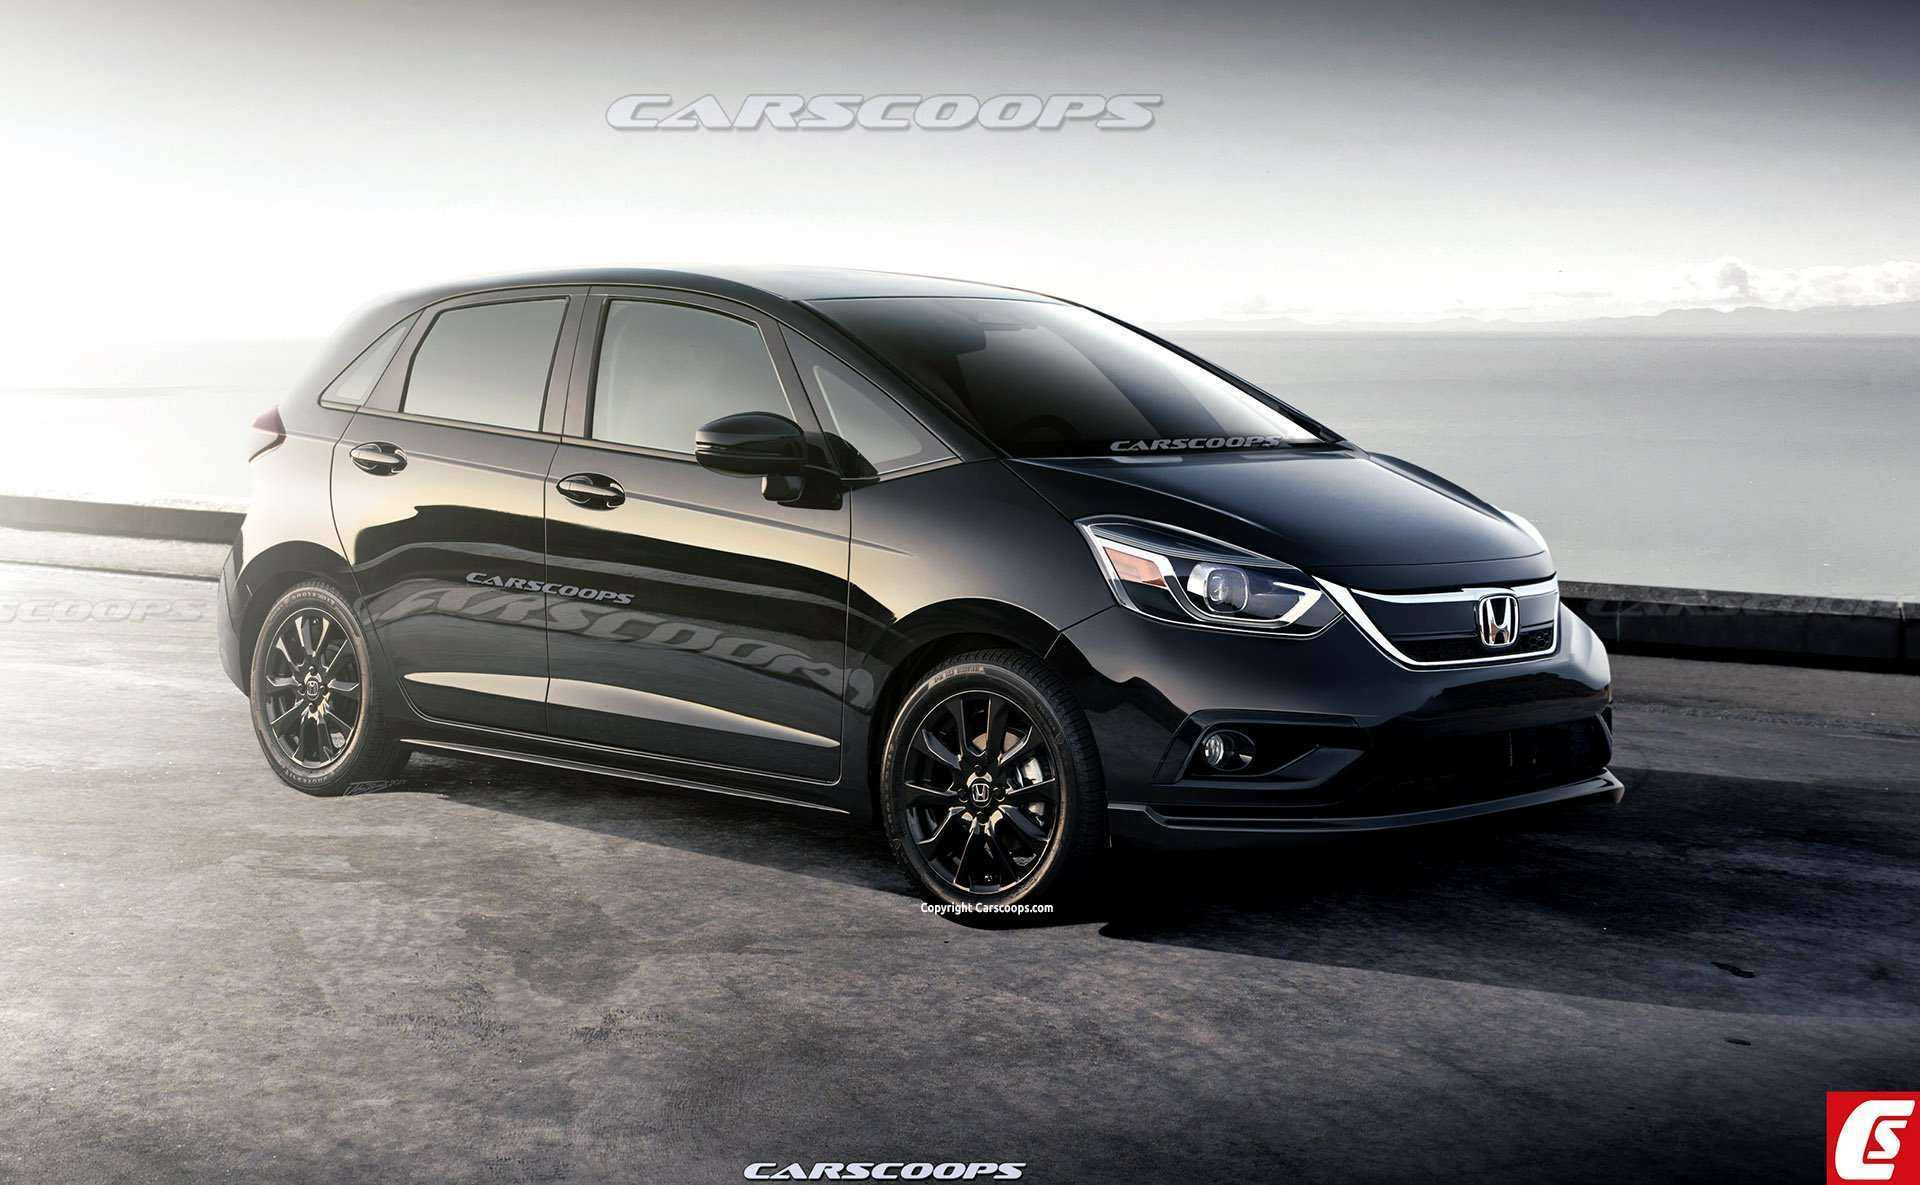 82 A 2020 Honda Fit Turbo Price